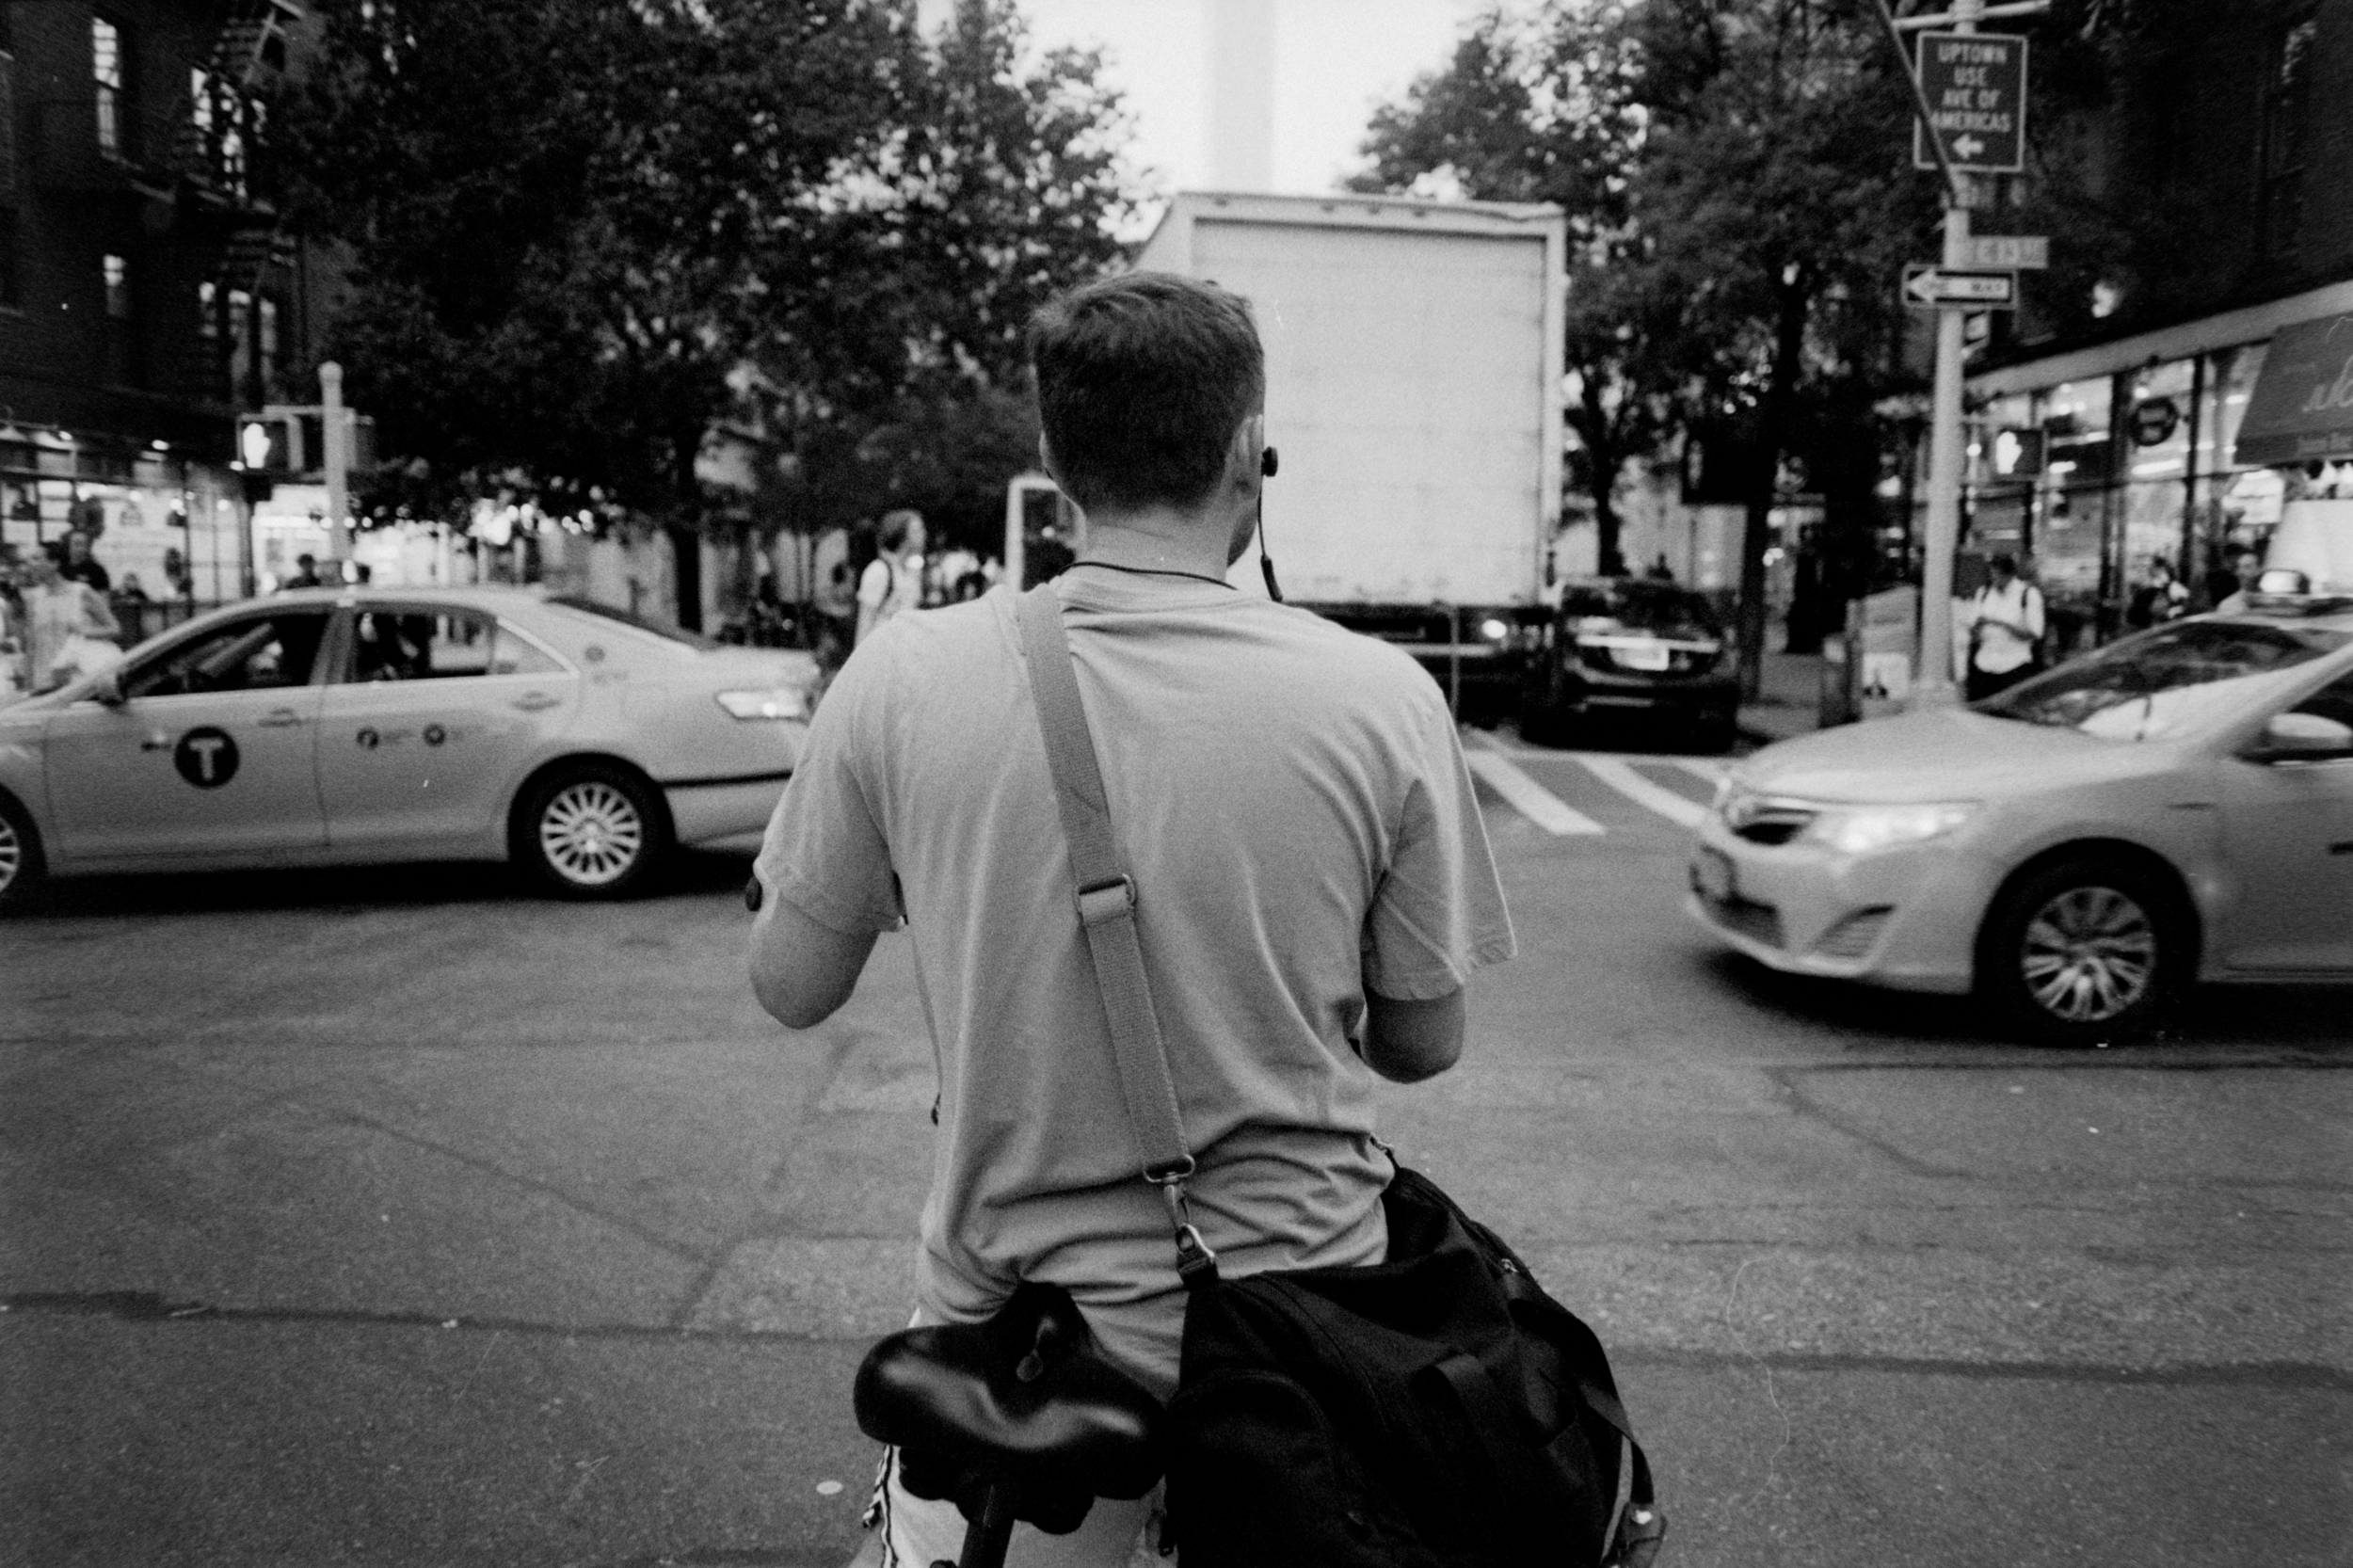 Cyclist - Illford HP5+ Pushed +2